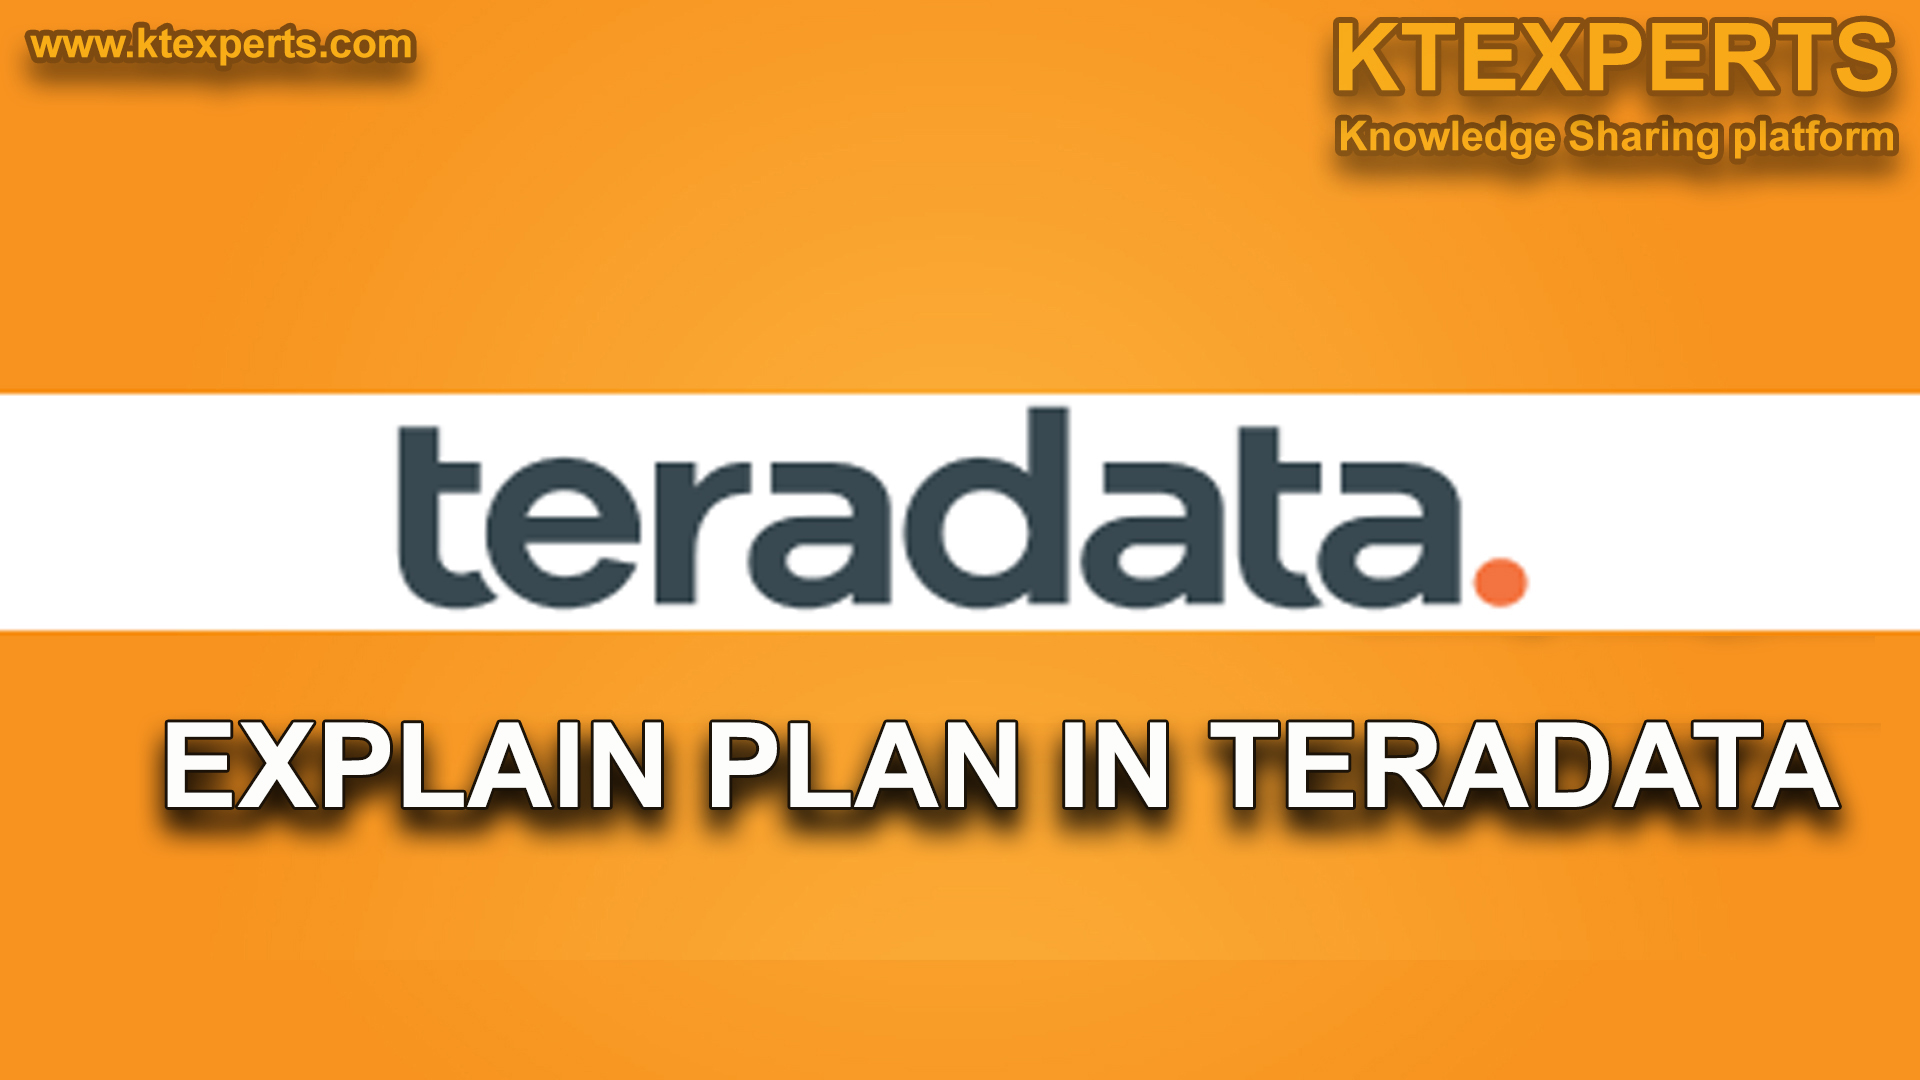 EXPLAIN PLAN IN TERADATA